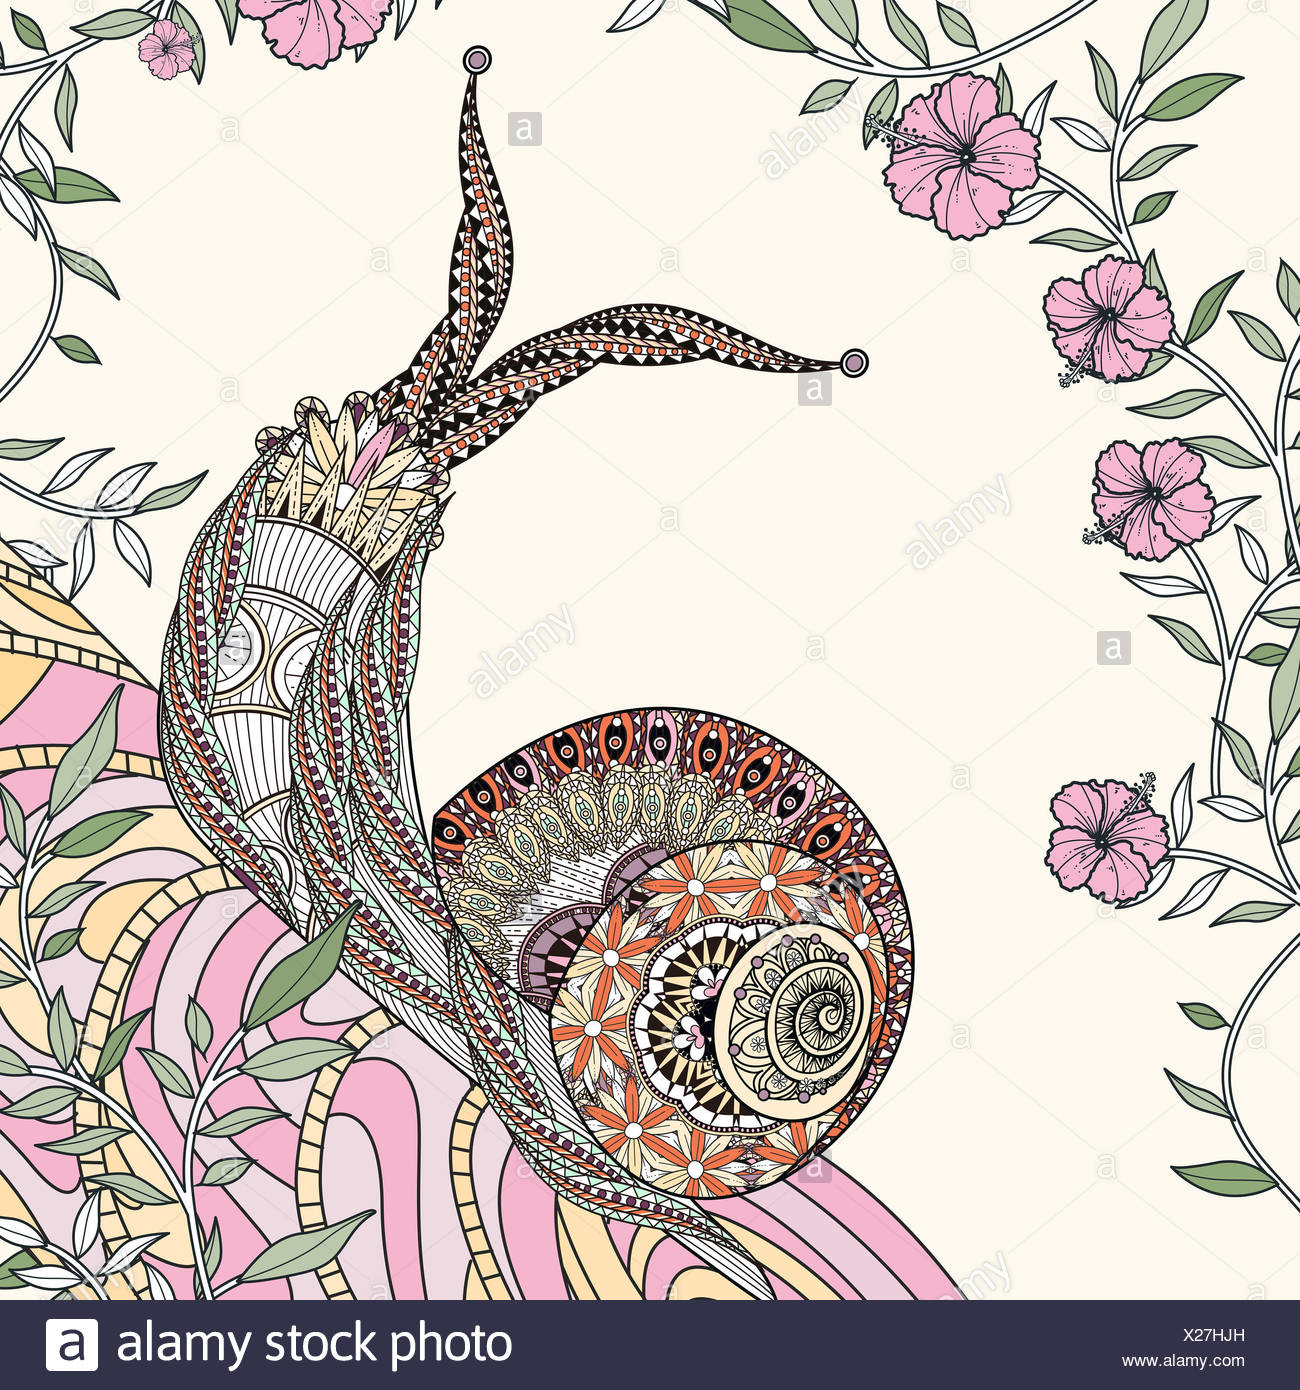 Colorful Drawing Snail Shell Stockfotos & Colorful Drawing Snail ...